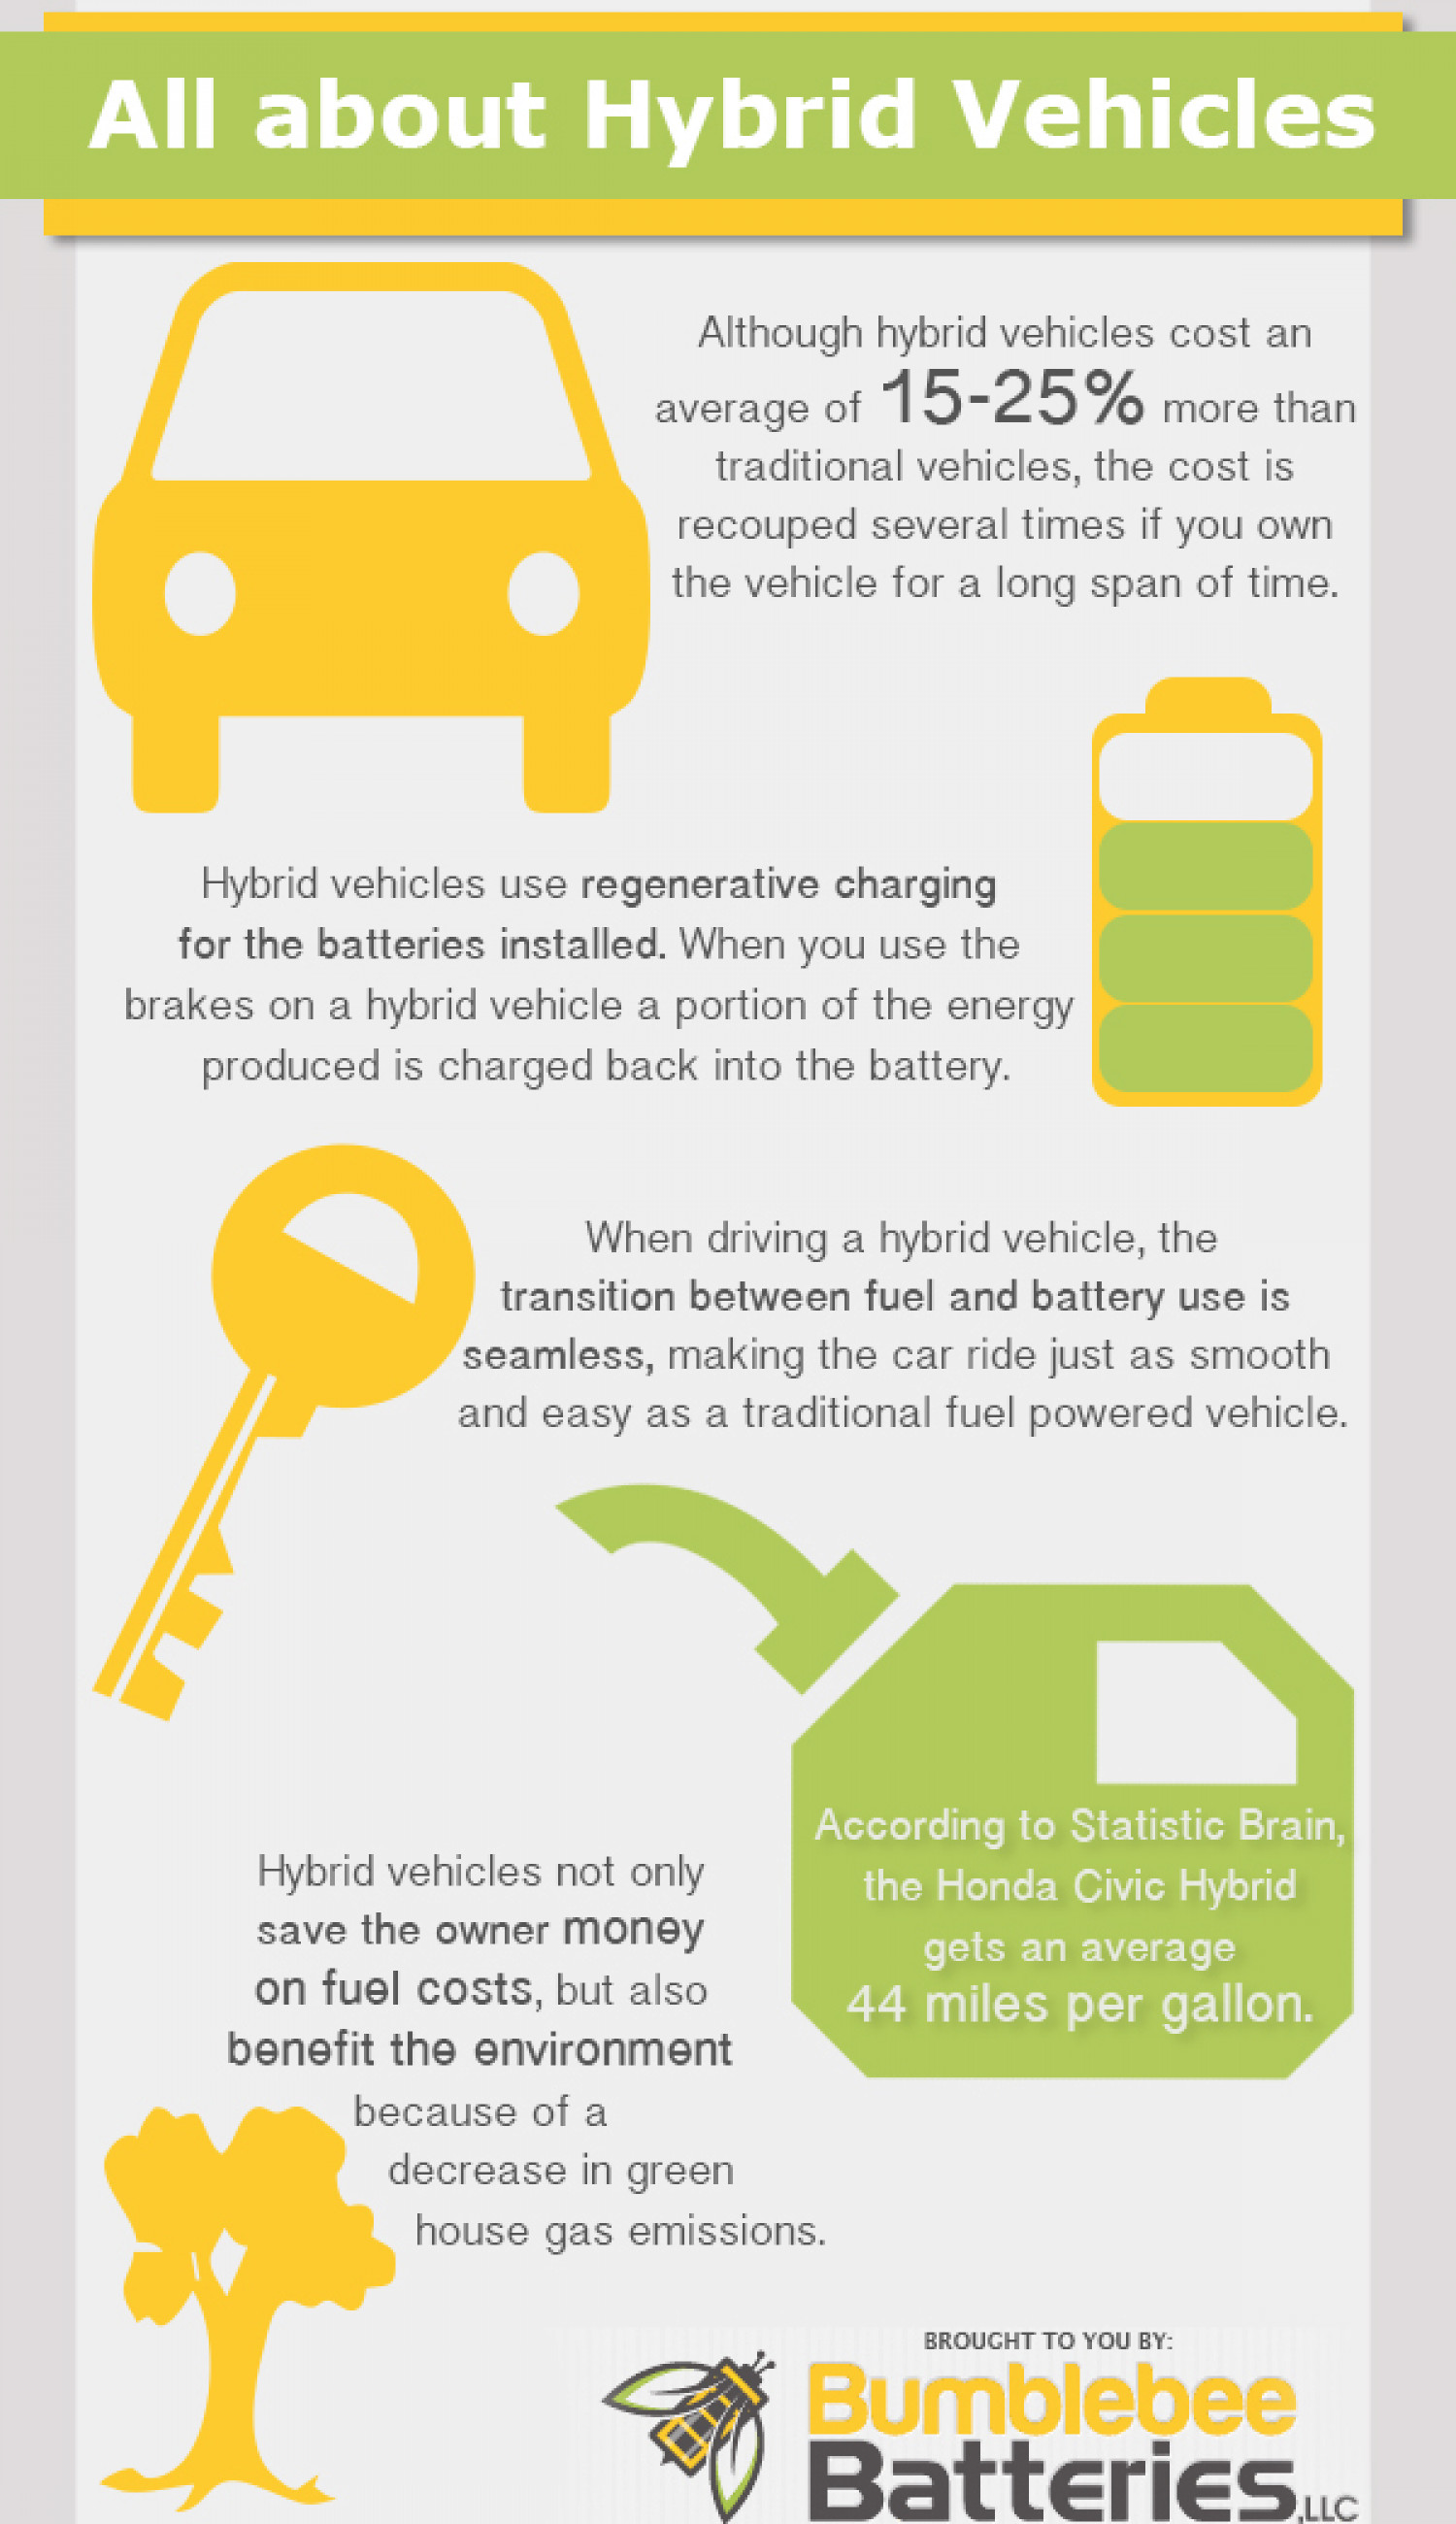 All About Hybrid Vehicles Infographic